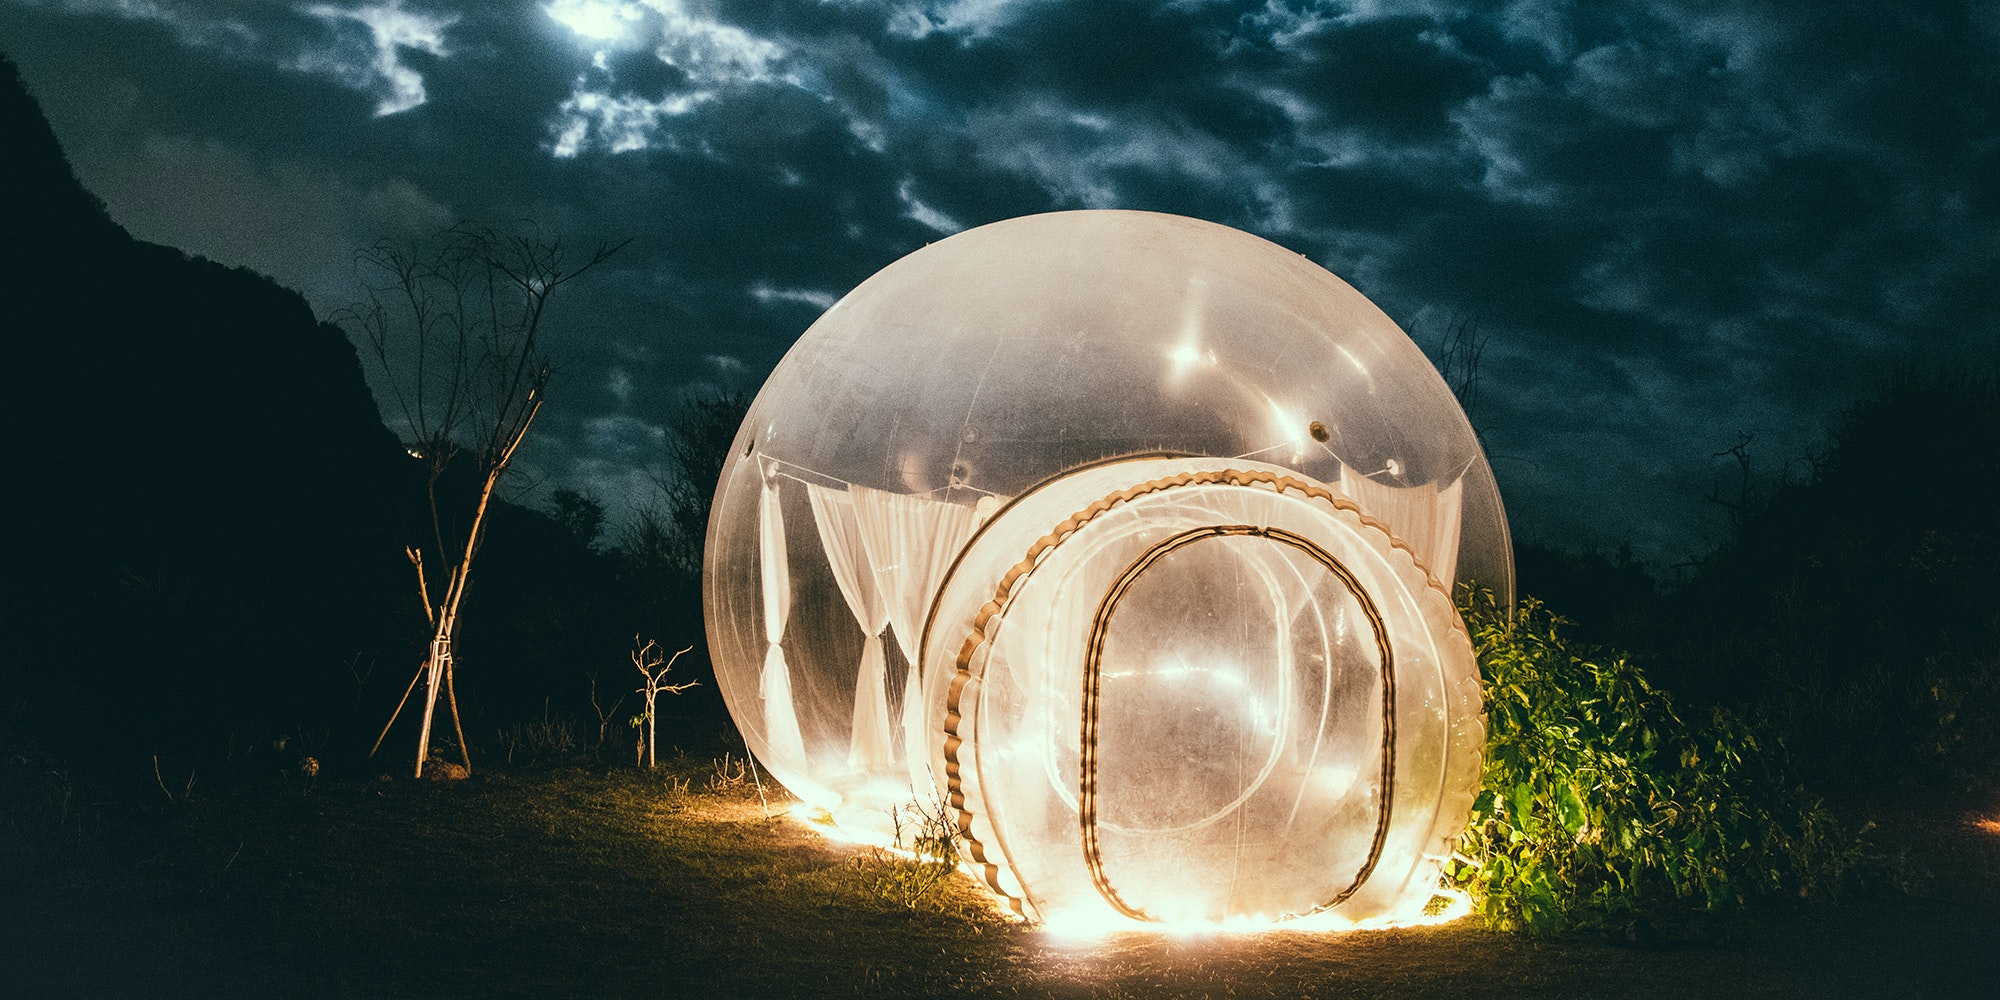 What It's Actually Like to Sleep in a Bubble Hotel